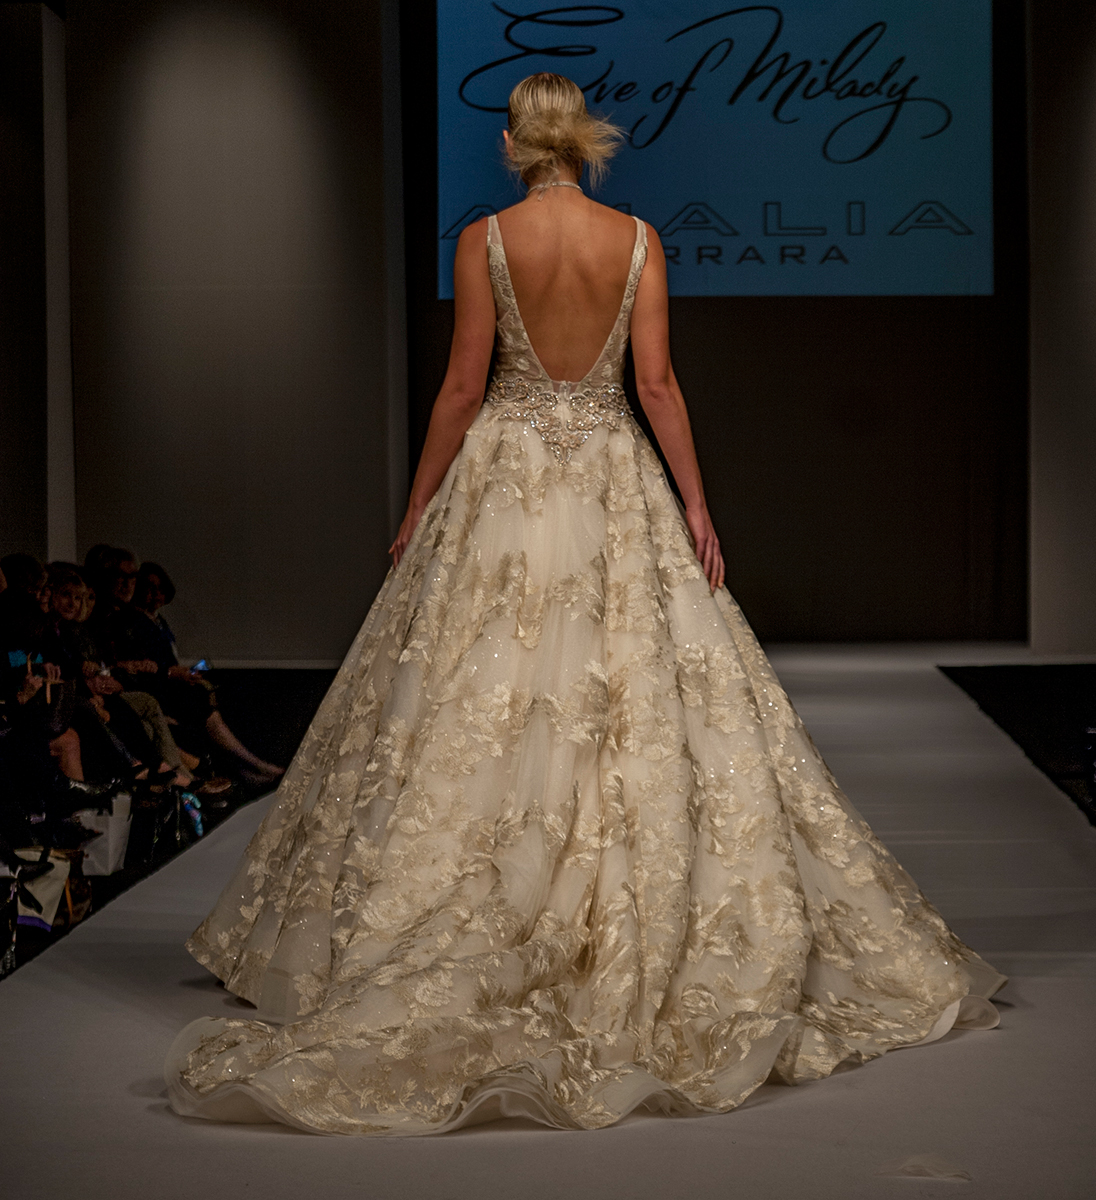 EM345 Bridal Gown By Eve Of Milady, Dallas Texas